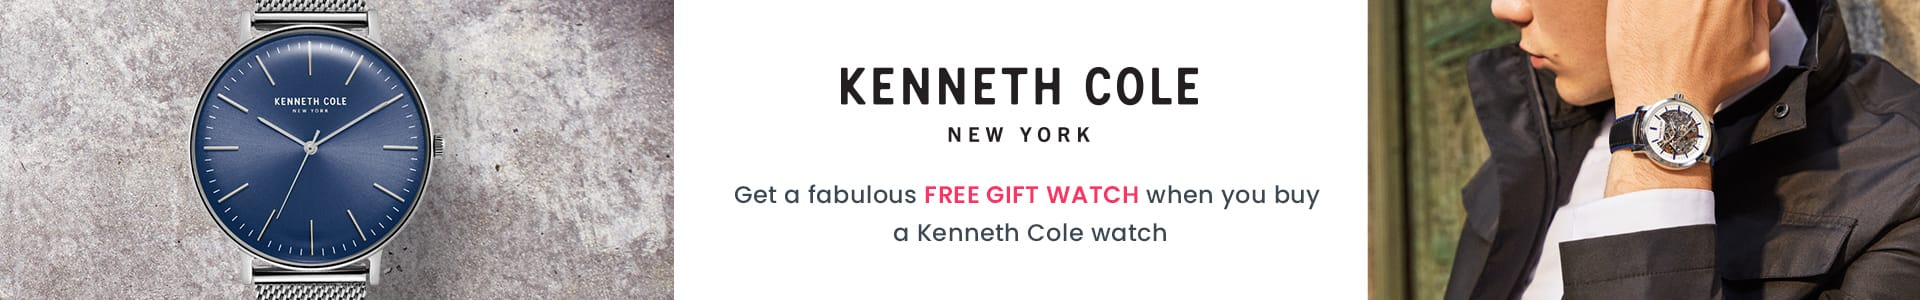 Kenneth Cole Promotion